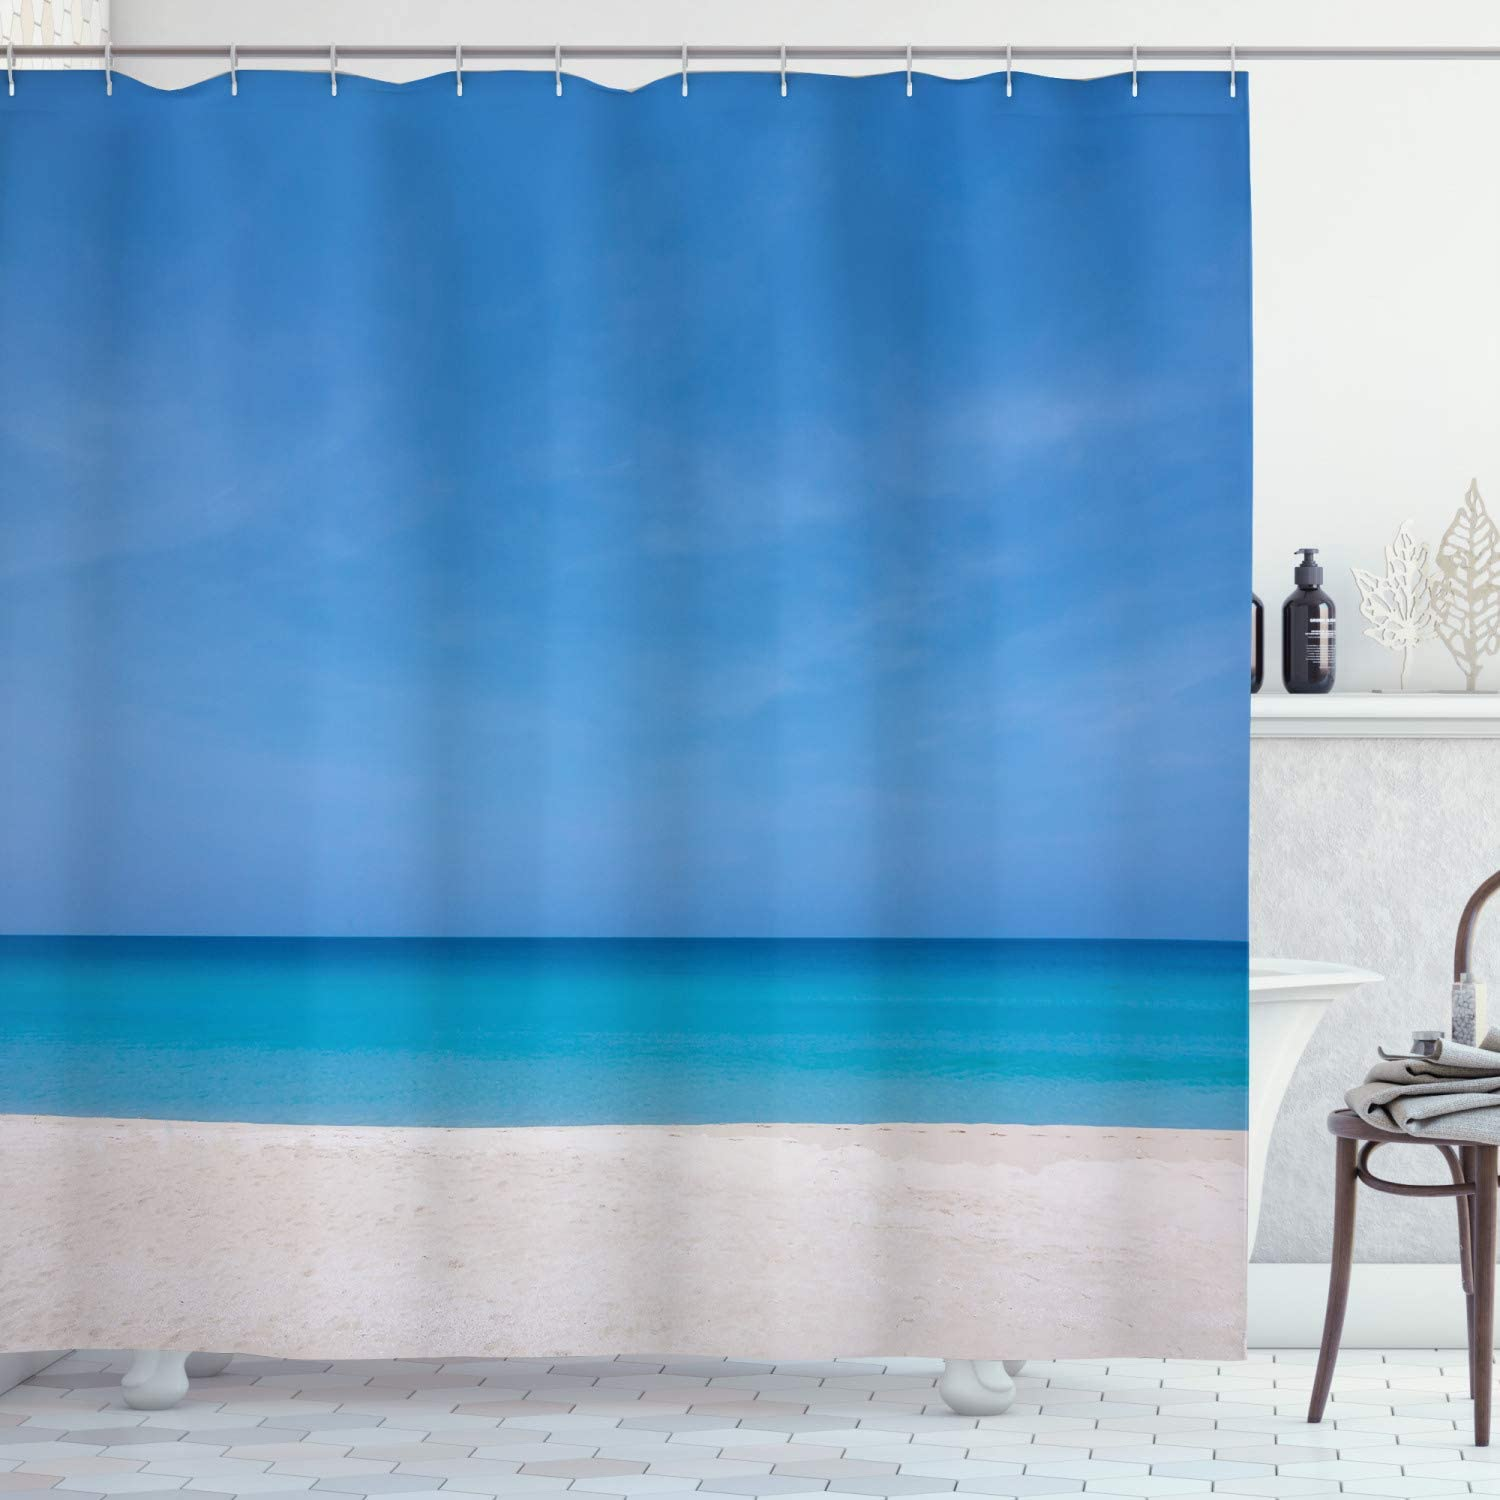 Amazon Com Ambesonne Ocean Shower Curtain Sandy Paradise Beach With Empty Relaxing Off Gone Away Theme Print In Tropical Land Cloth Fabric Bathroom Decor Set With Hooks 70 Long Blue Beige Home